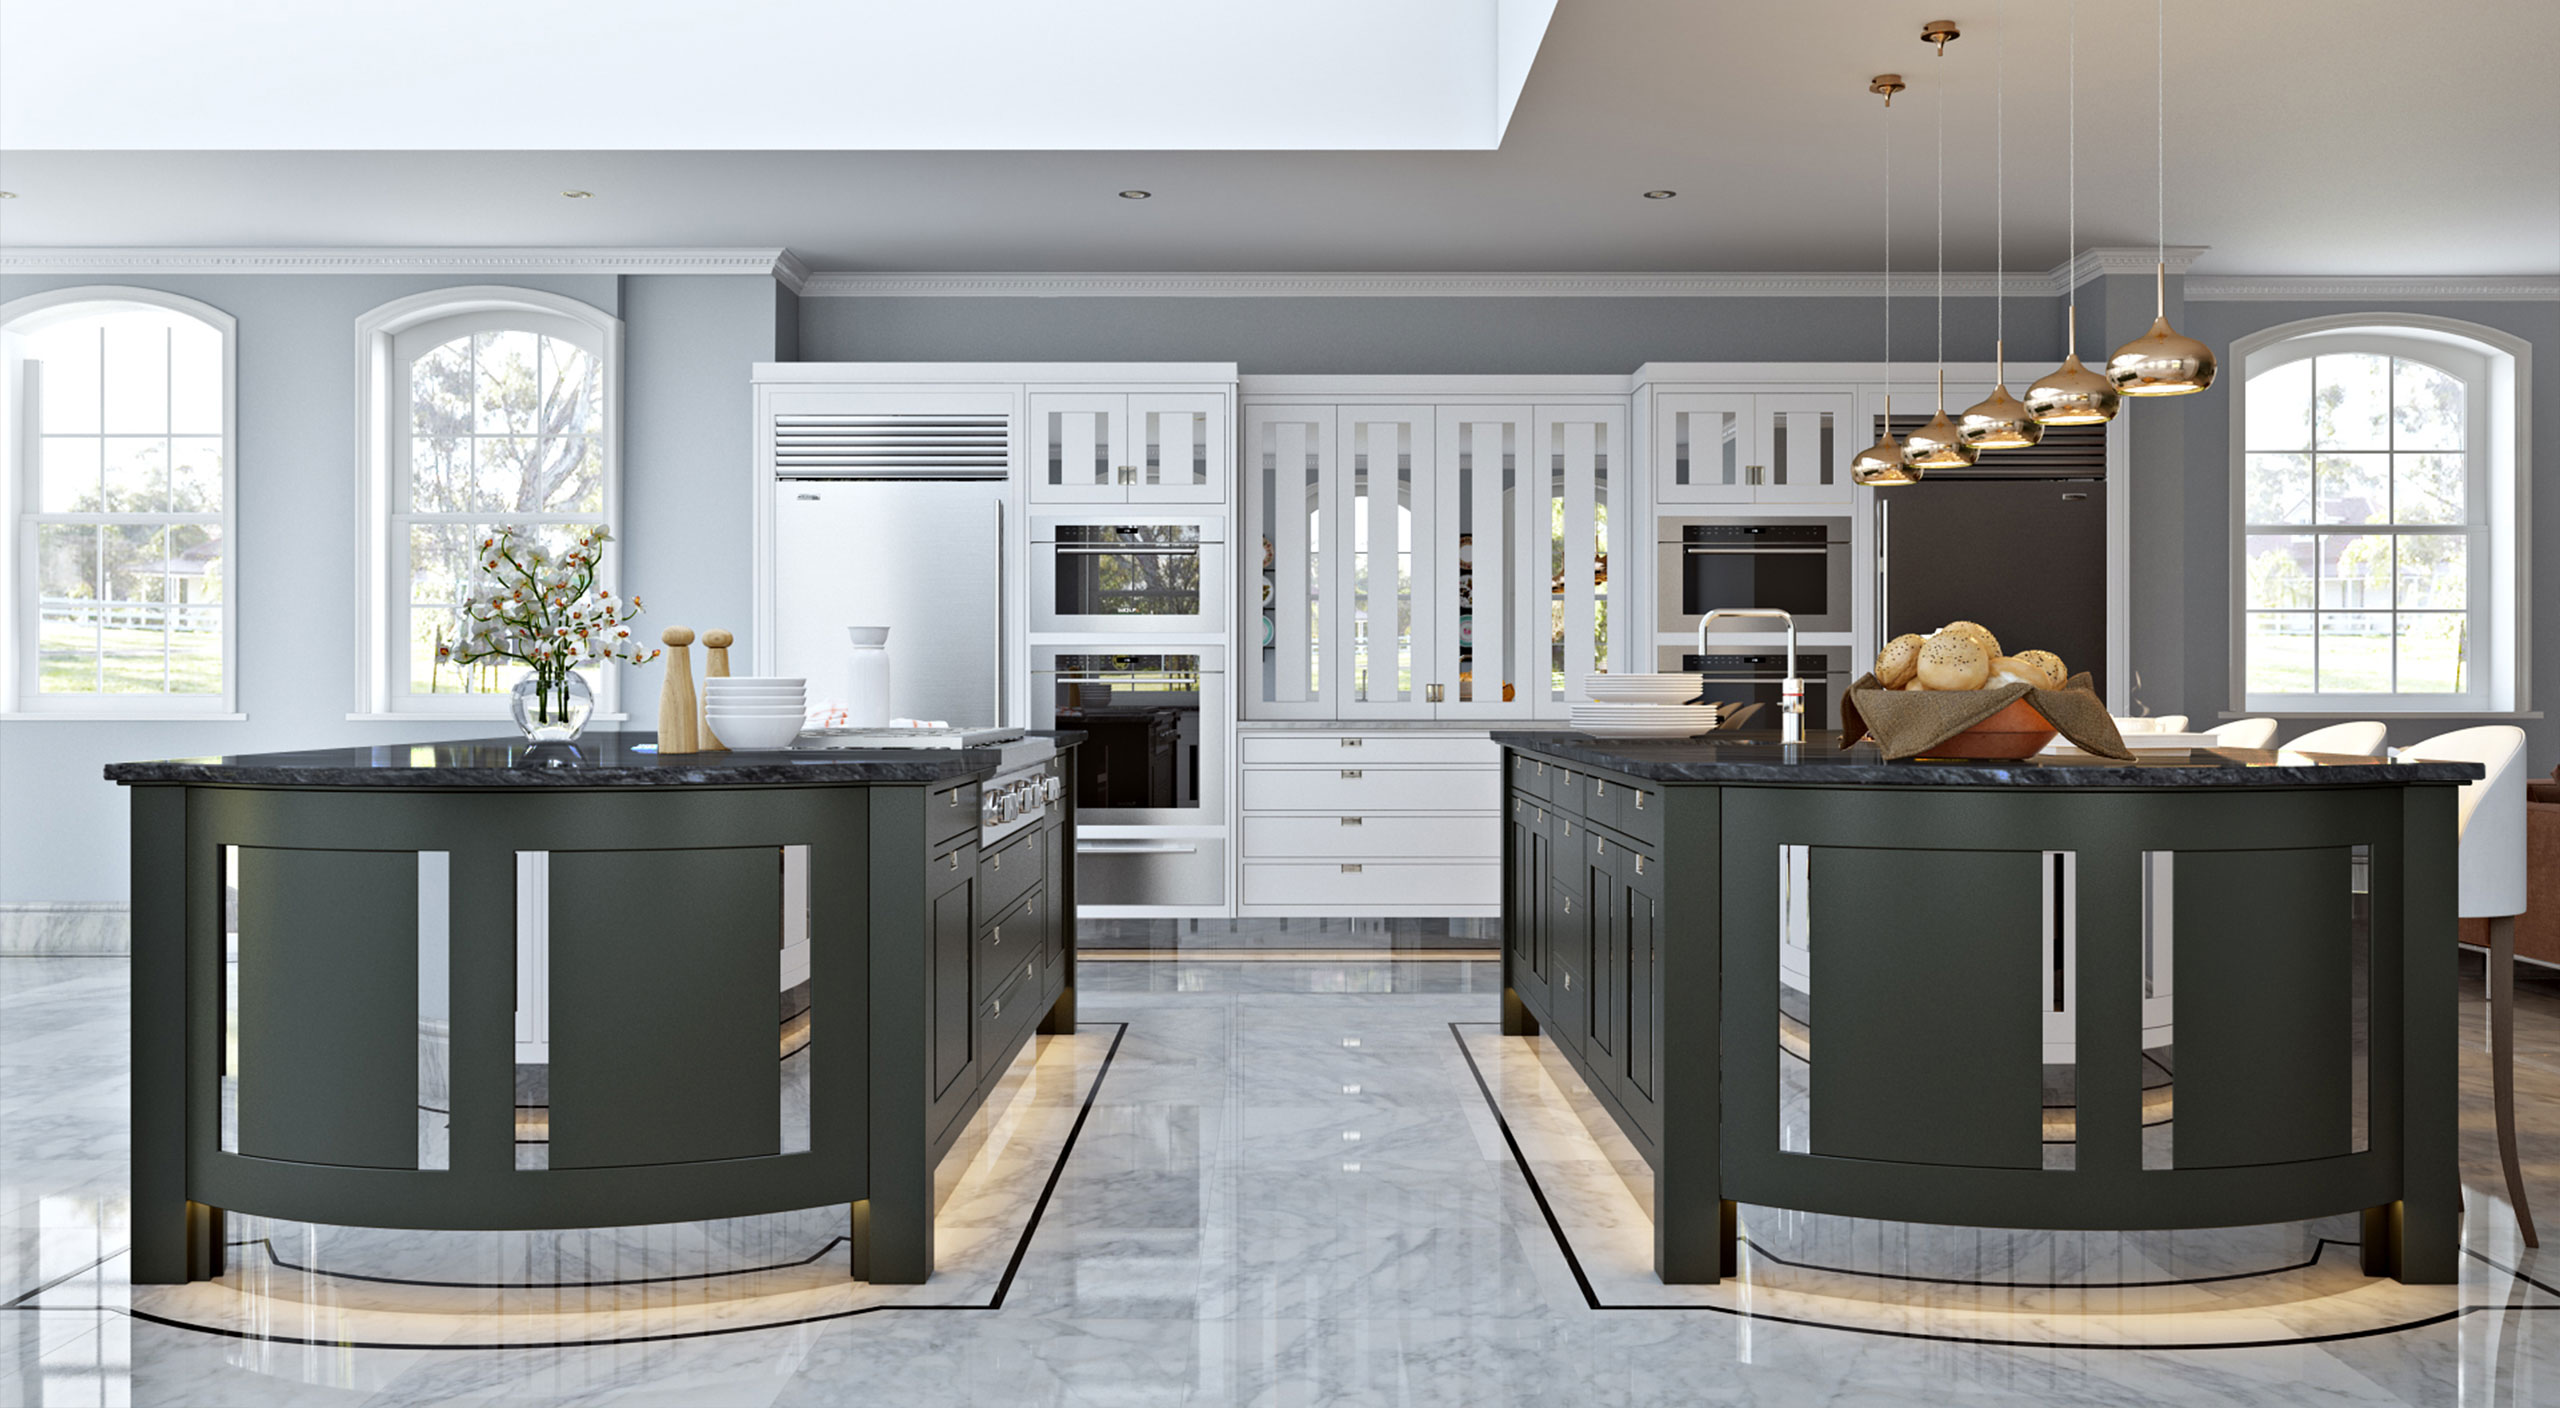 A Macassar kitchen by Smallbone with white handpainted wall cabinets and two central islands crafted from ebony